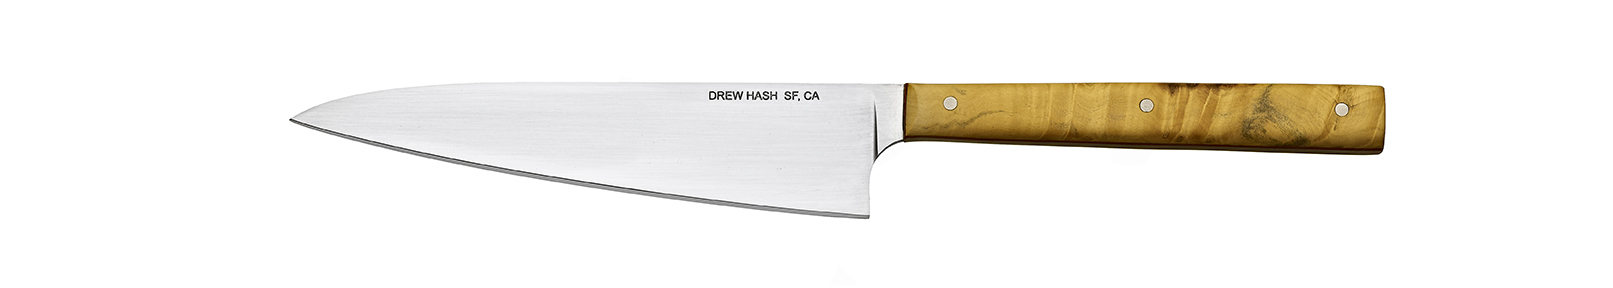 10-in. utility knife, 6-in. AEB-L blade, box elder handle